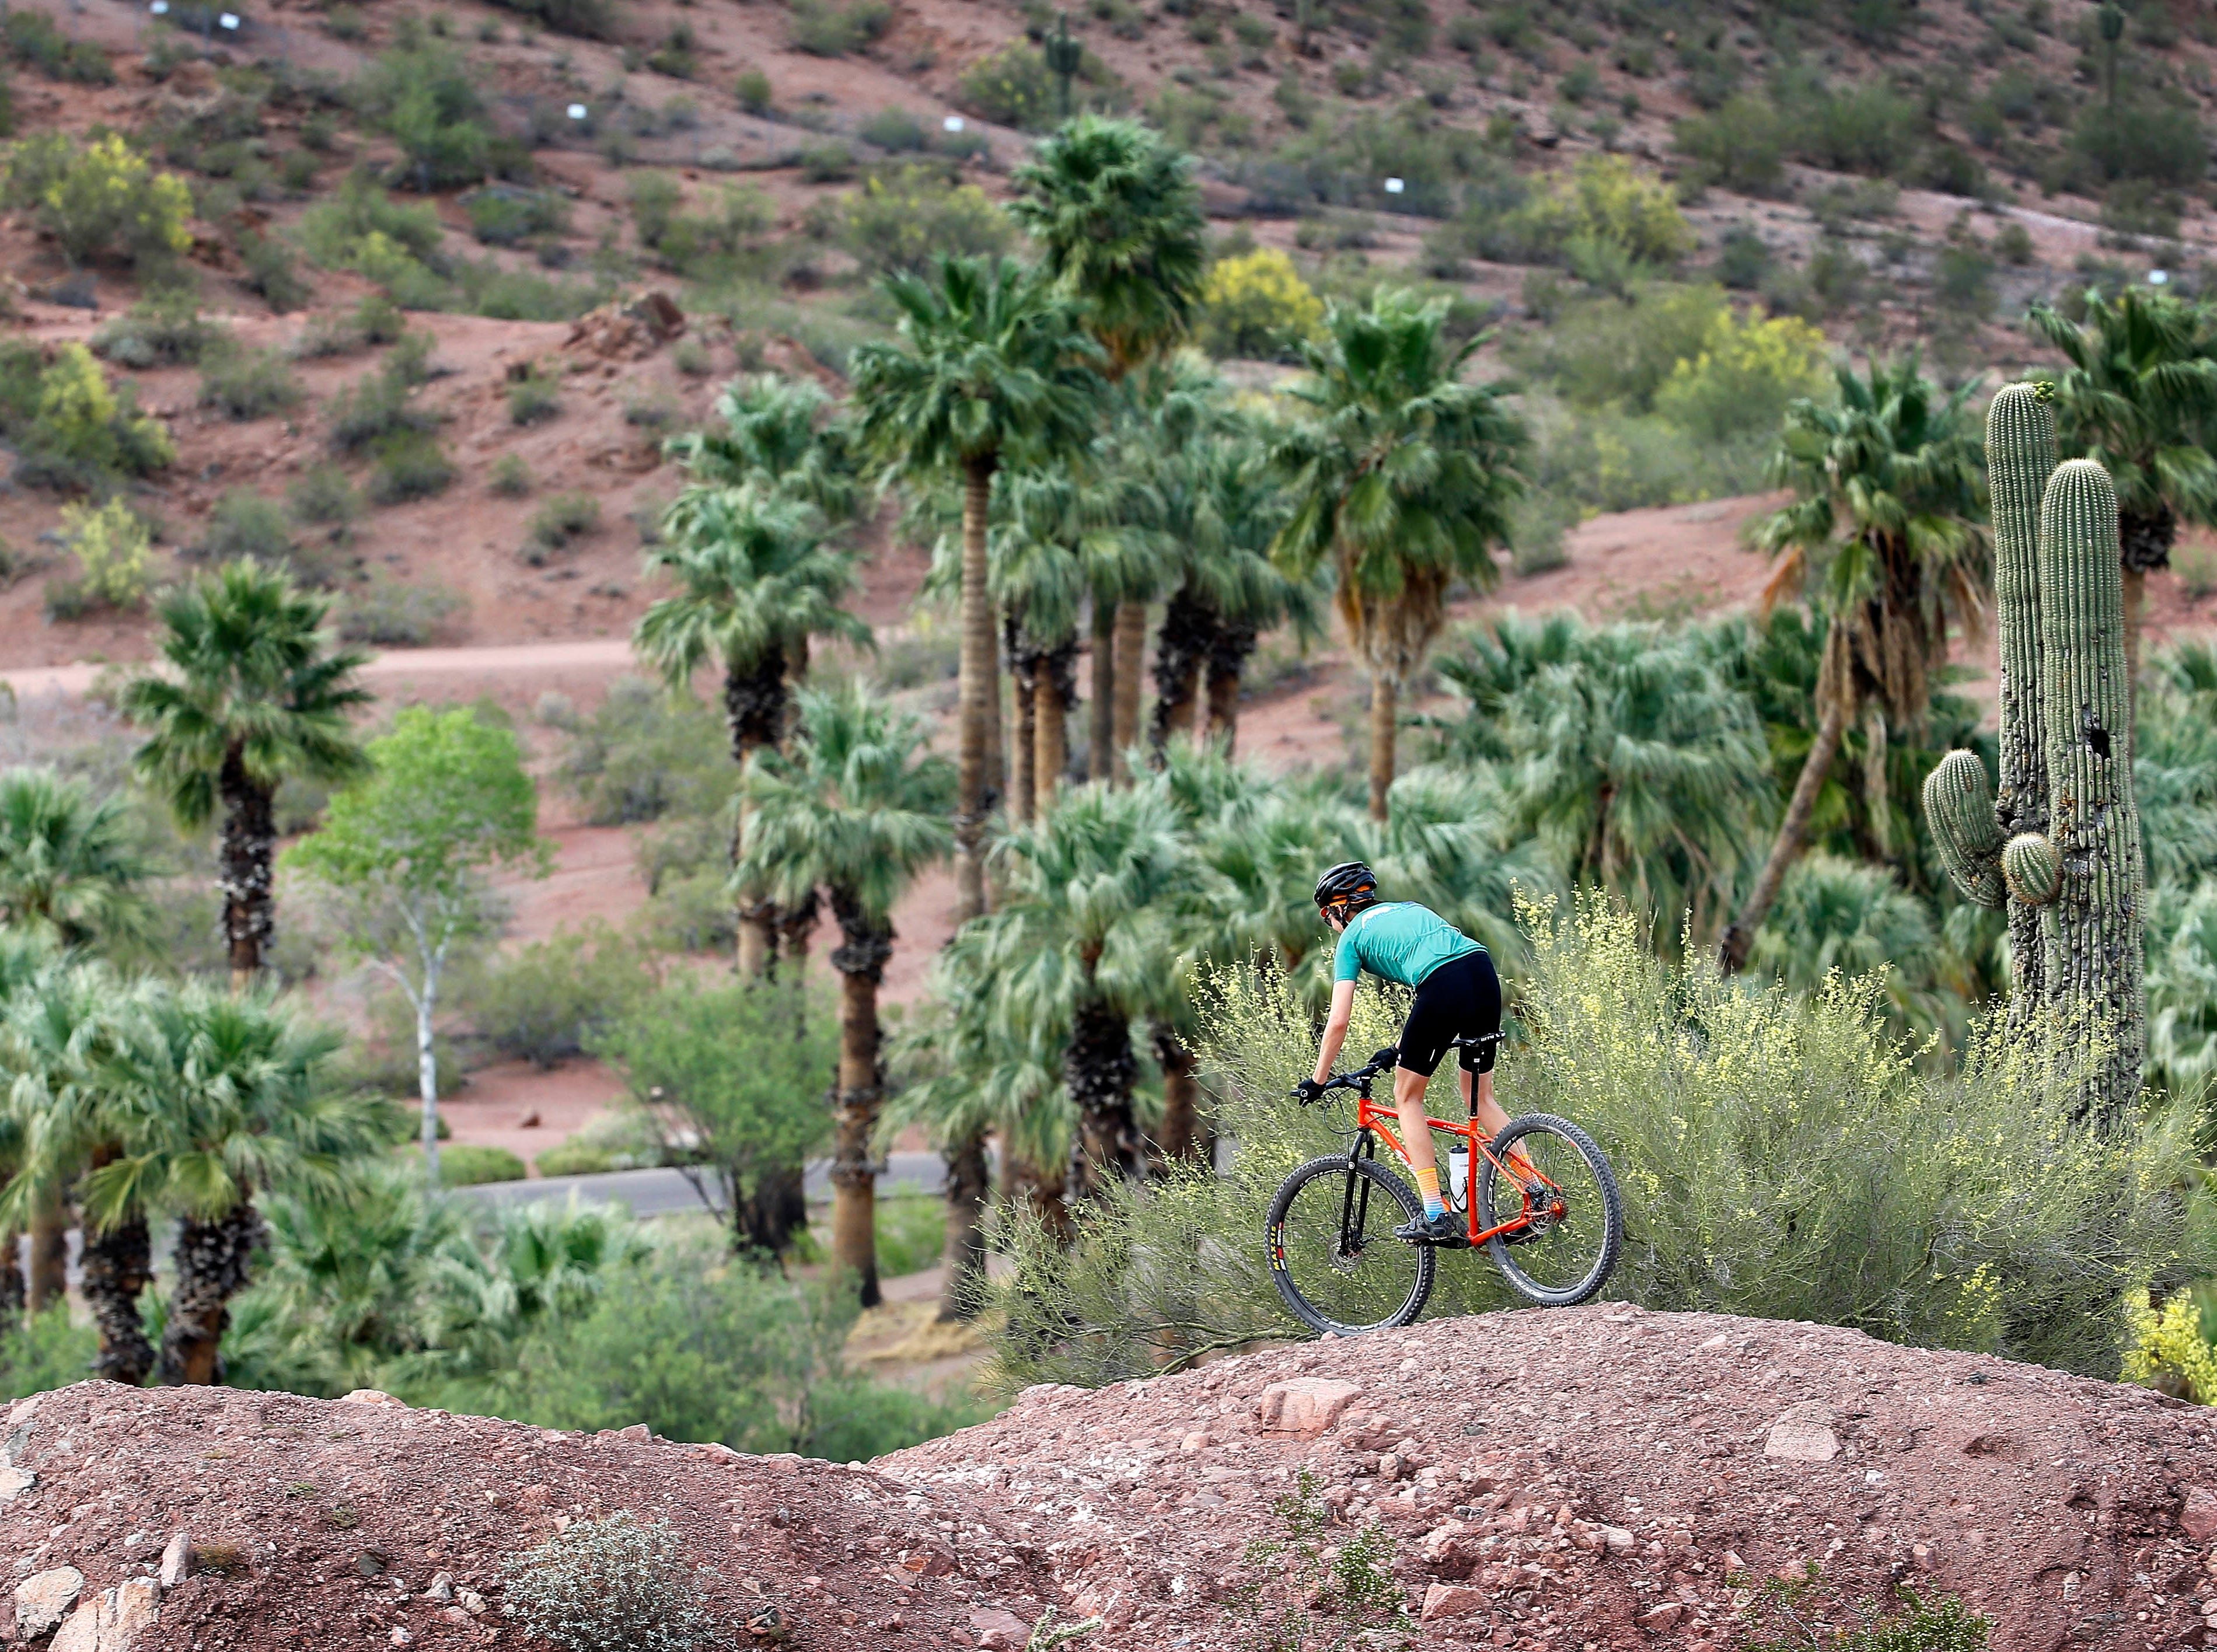 Geoff Carr enjoys the perfect weather as he rides his bike through Papago Park April 19, 2016, in Phoenix.